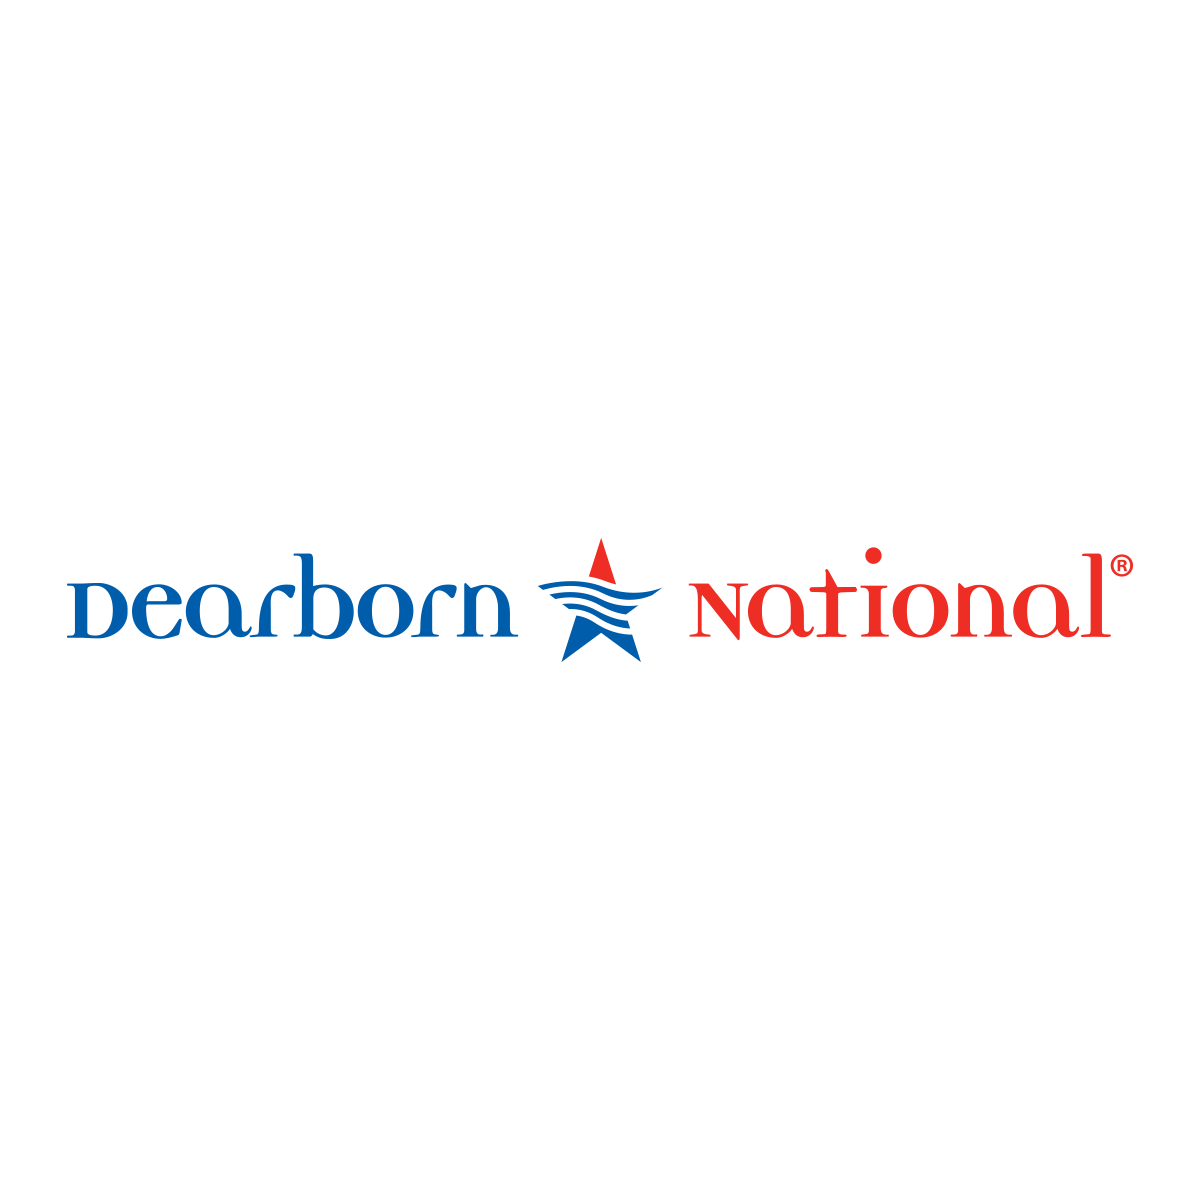 Dearborn Png - Dearborn national life insurance - insurance